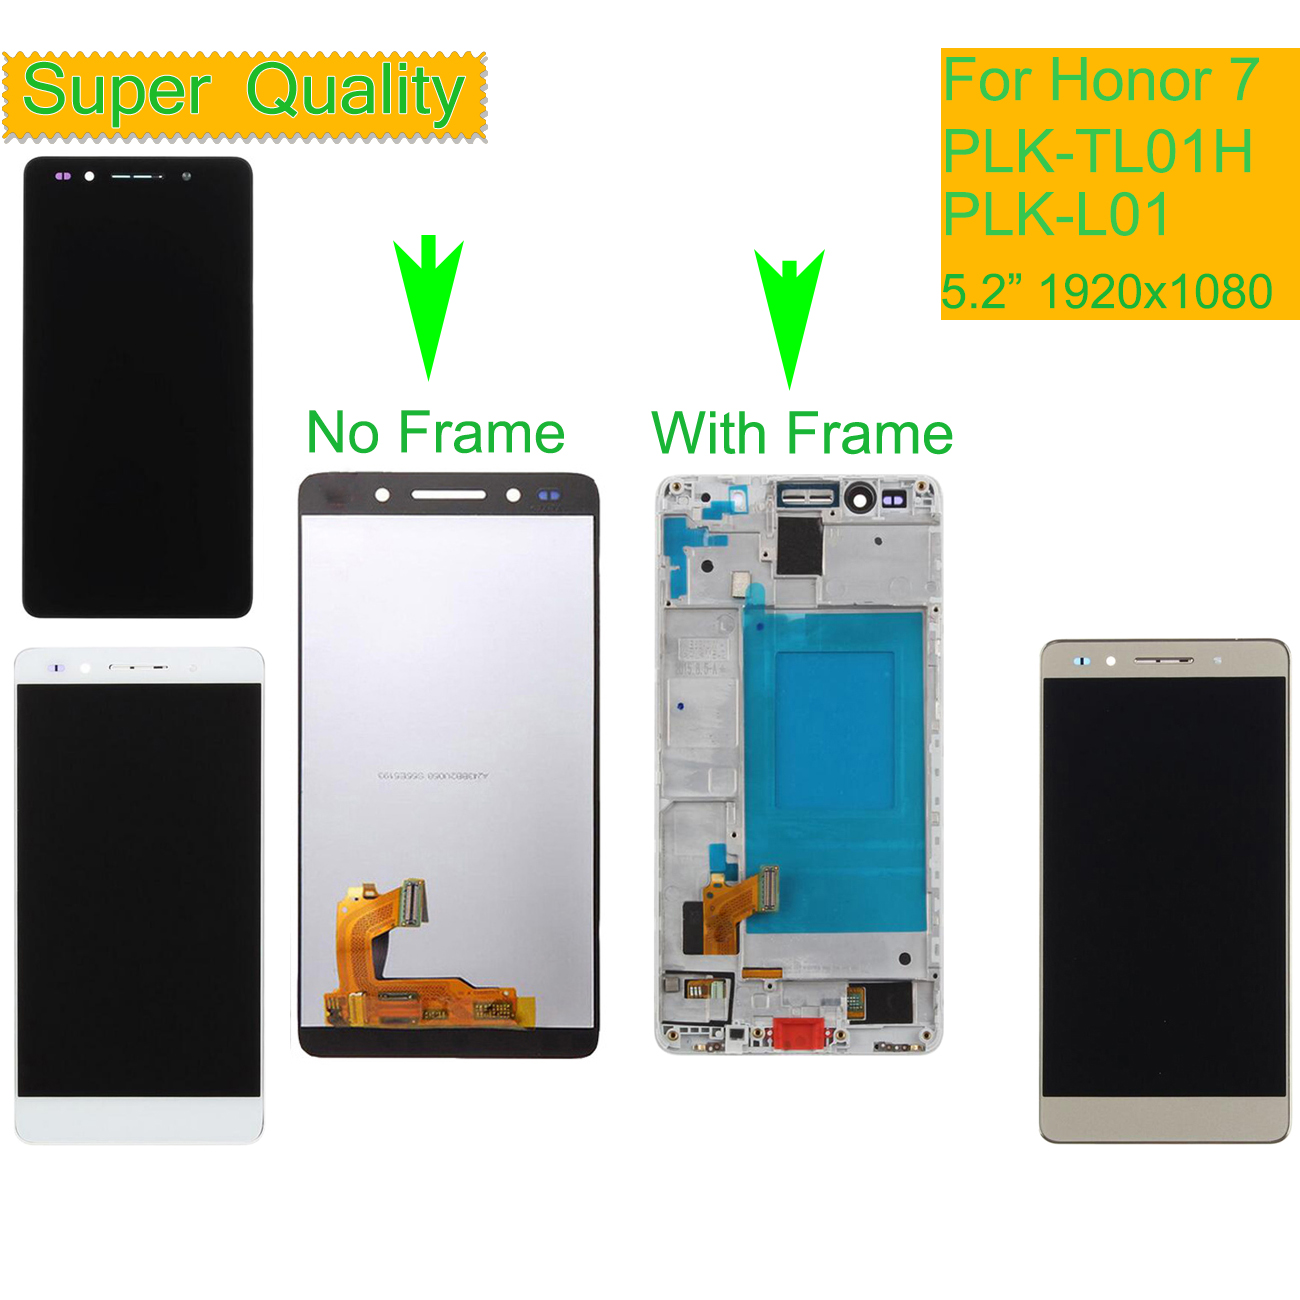 Gold Color : White LCD Screen Mobile Phone for Huawei Honor 7 and Digitizer Full Assembly with Frame